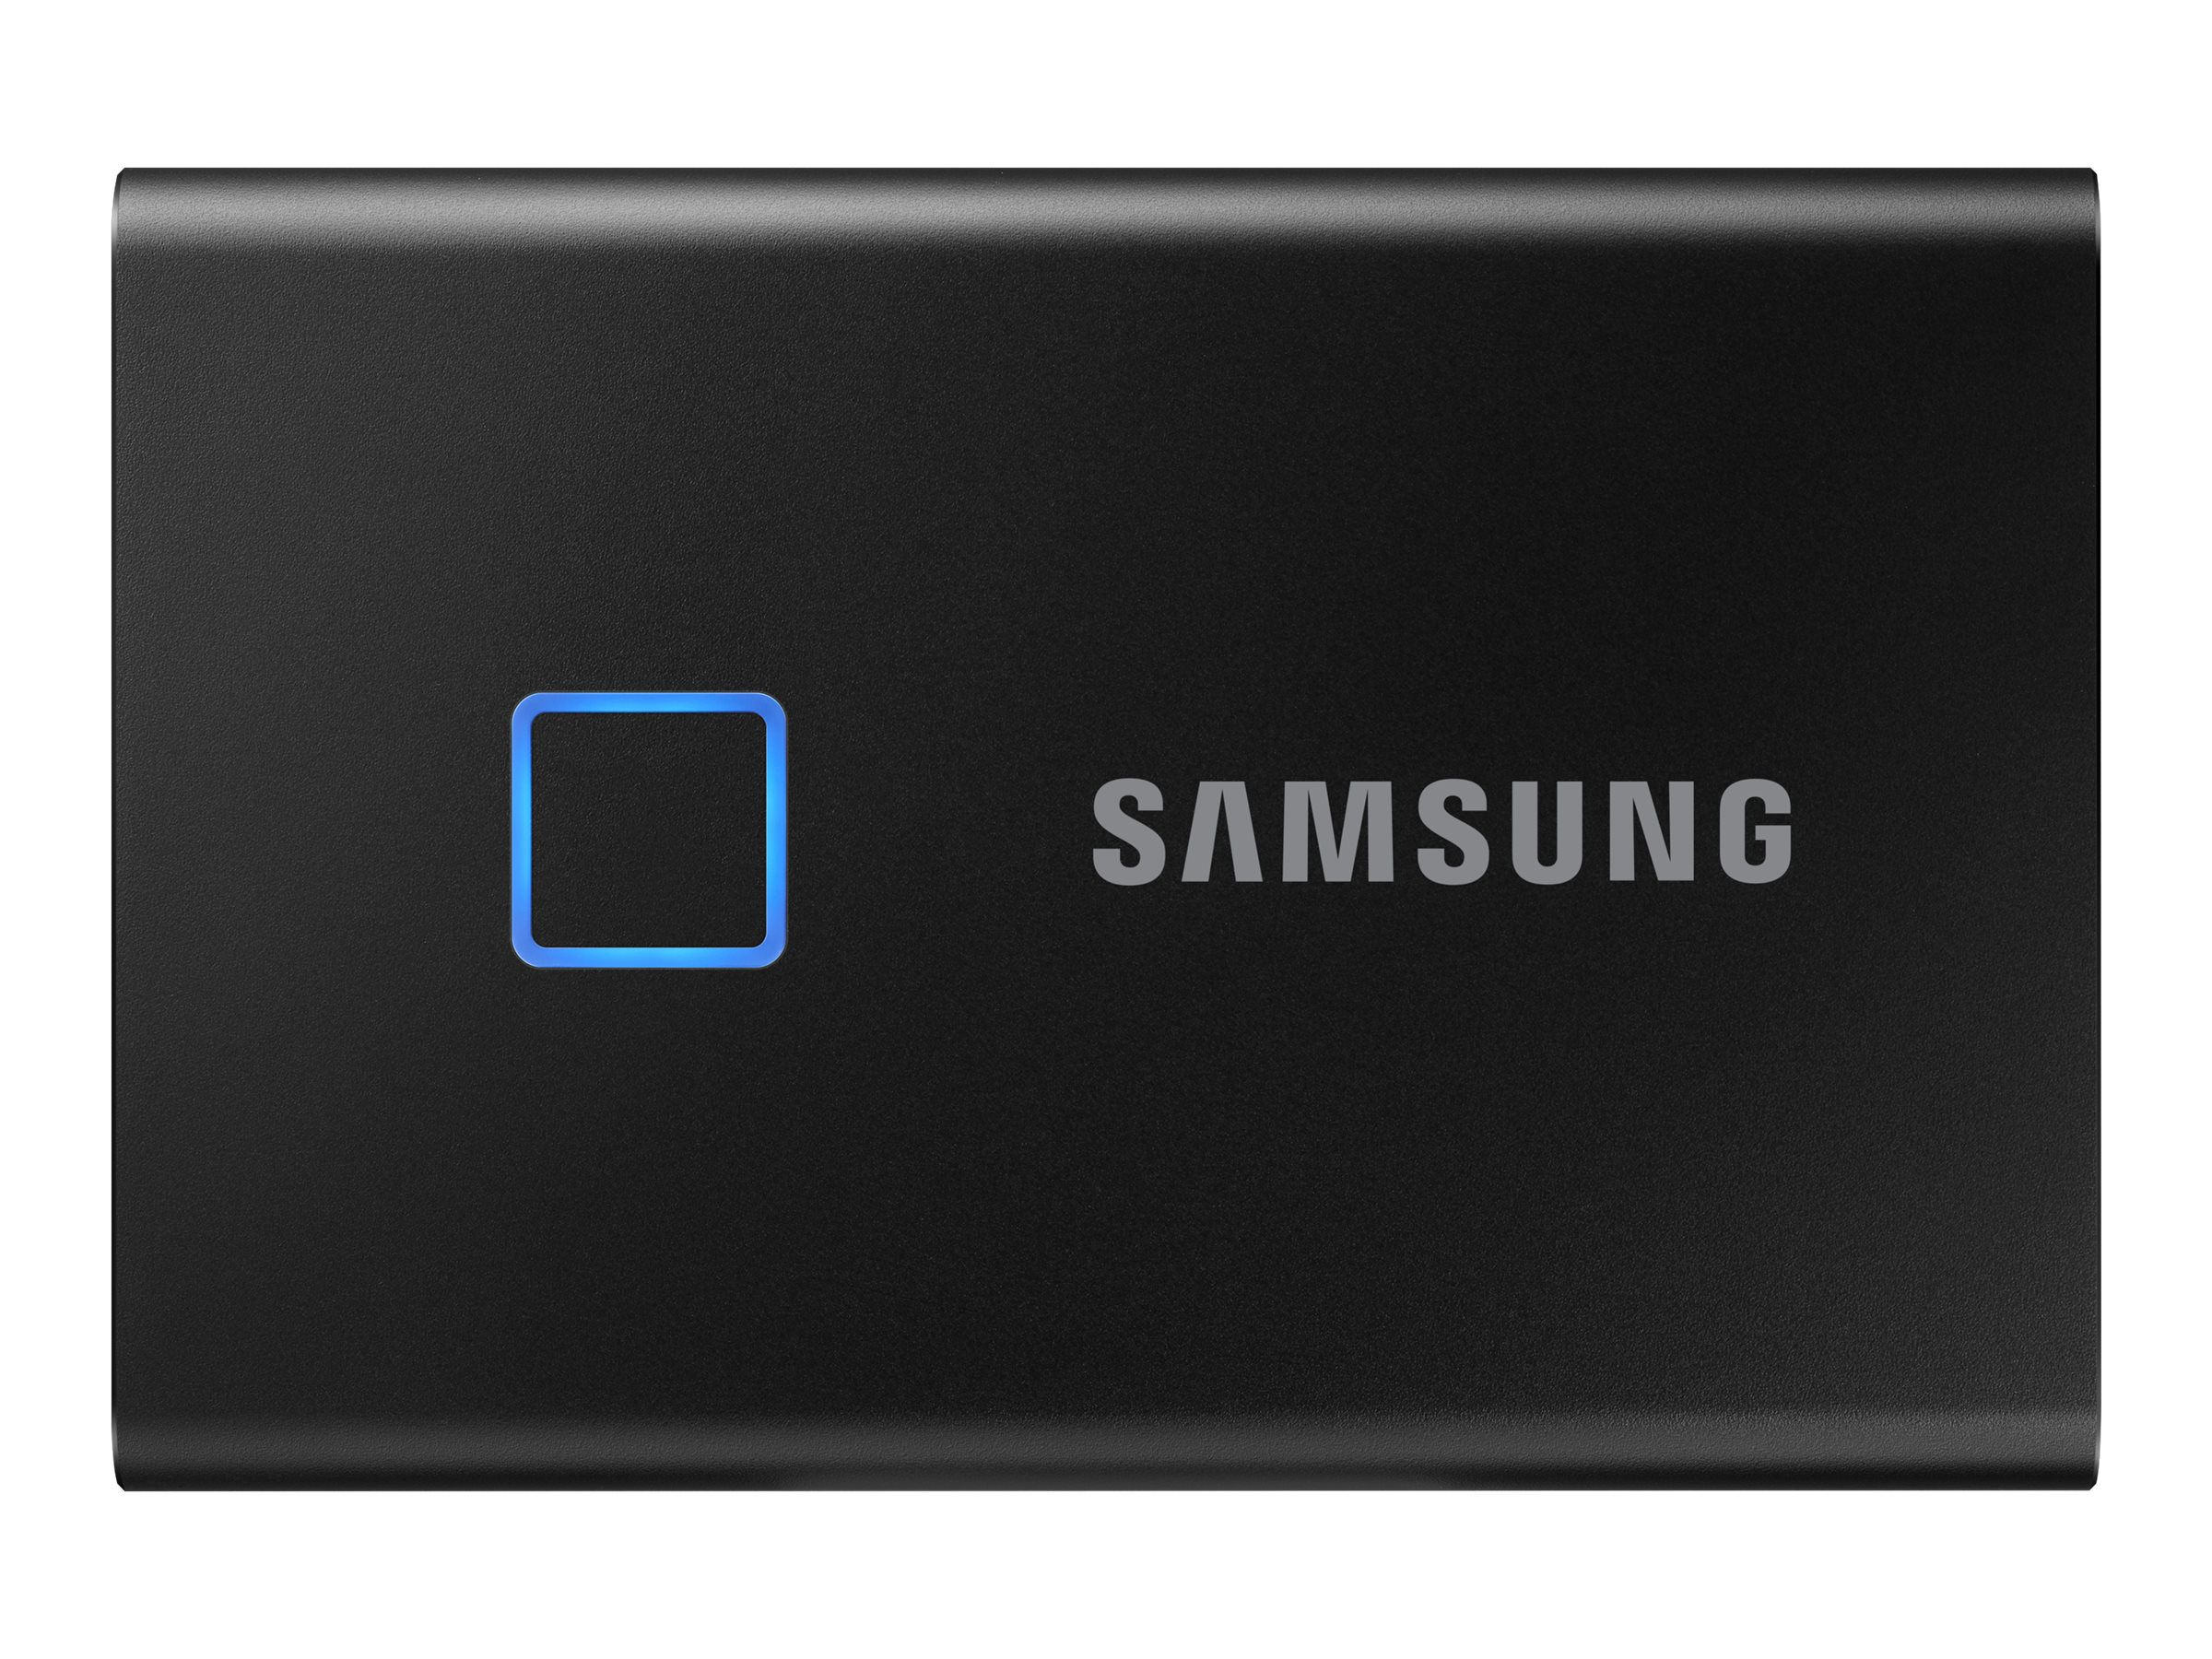 Samsung Portable SSD T7 Touch MU-PC1T0K - solid state drive - 1 TB - USB 3.2 Gen 2 -